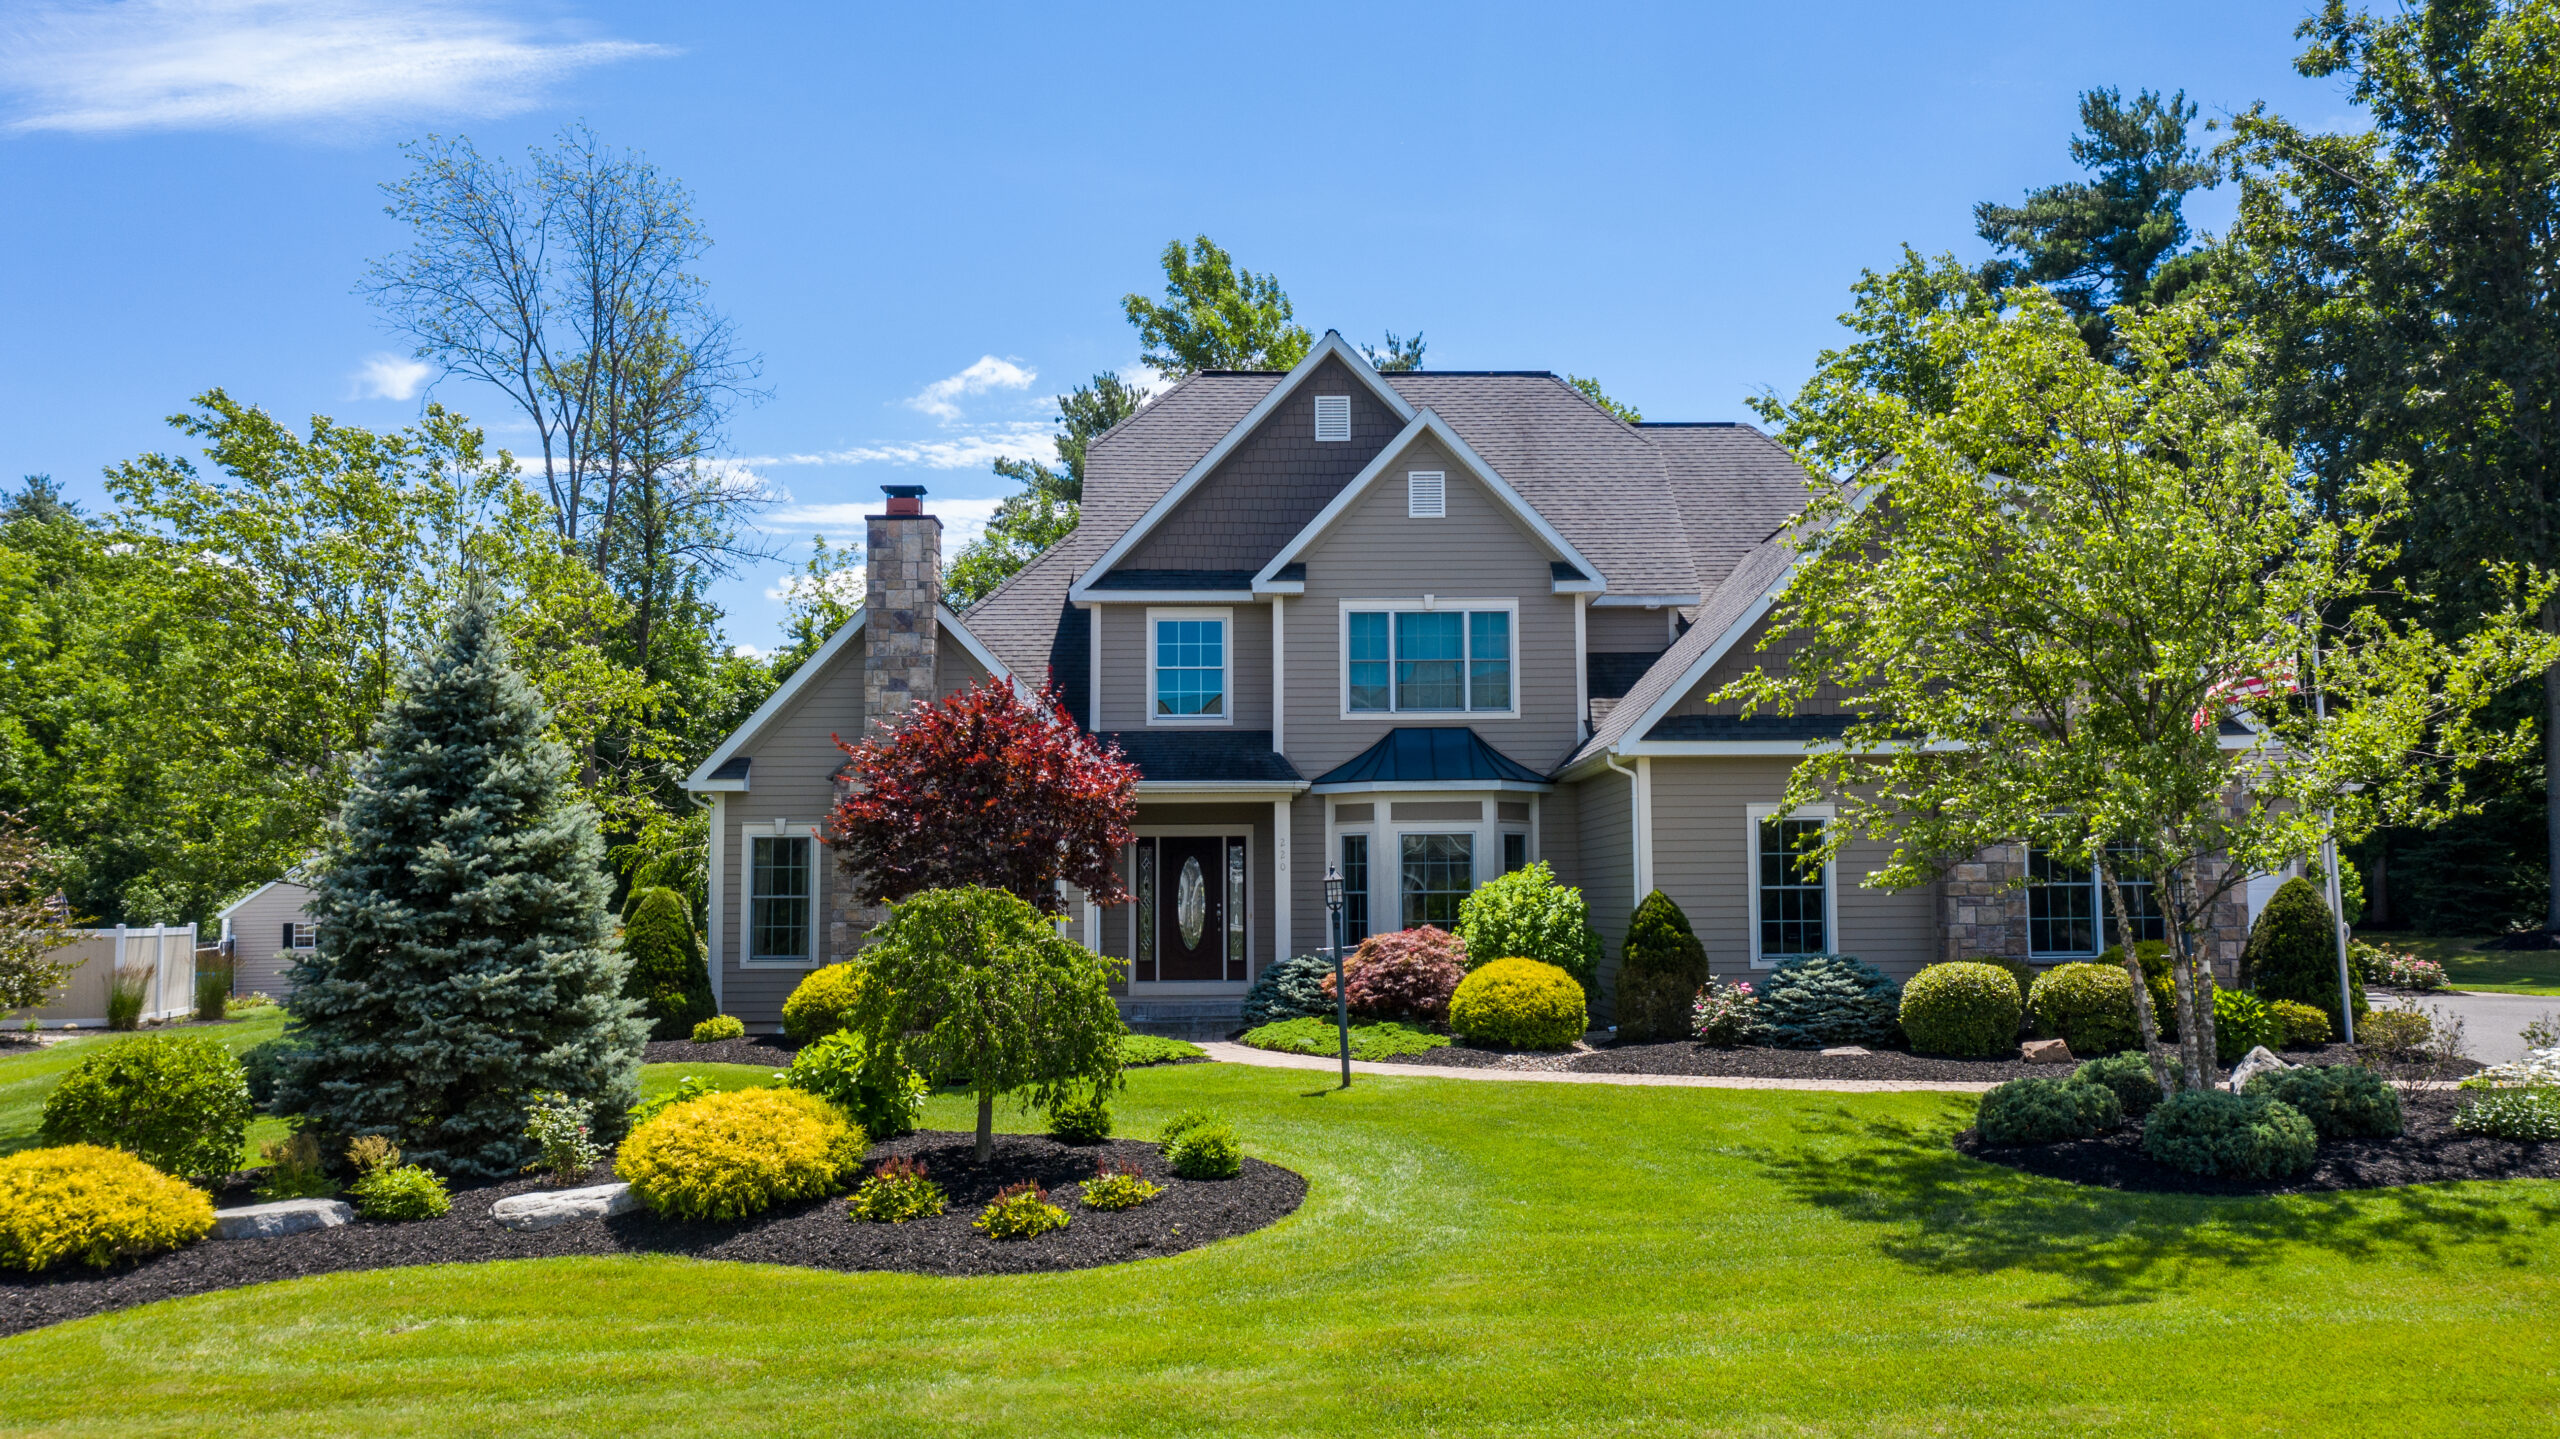 220 Brittany Place - Full Res -0484